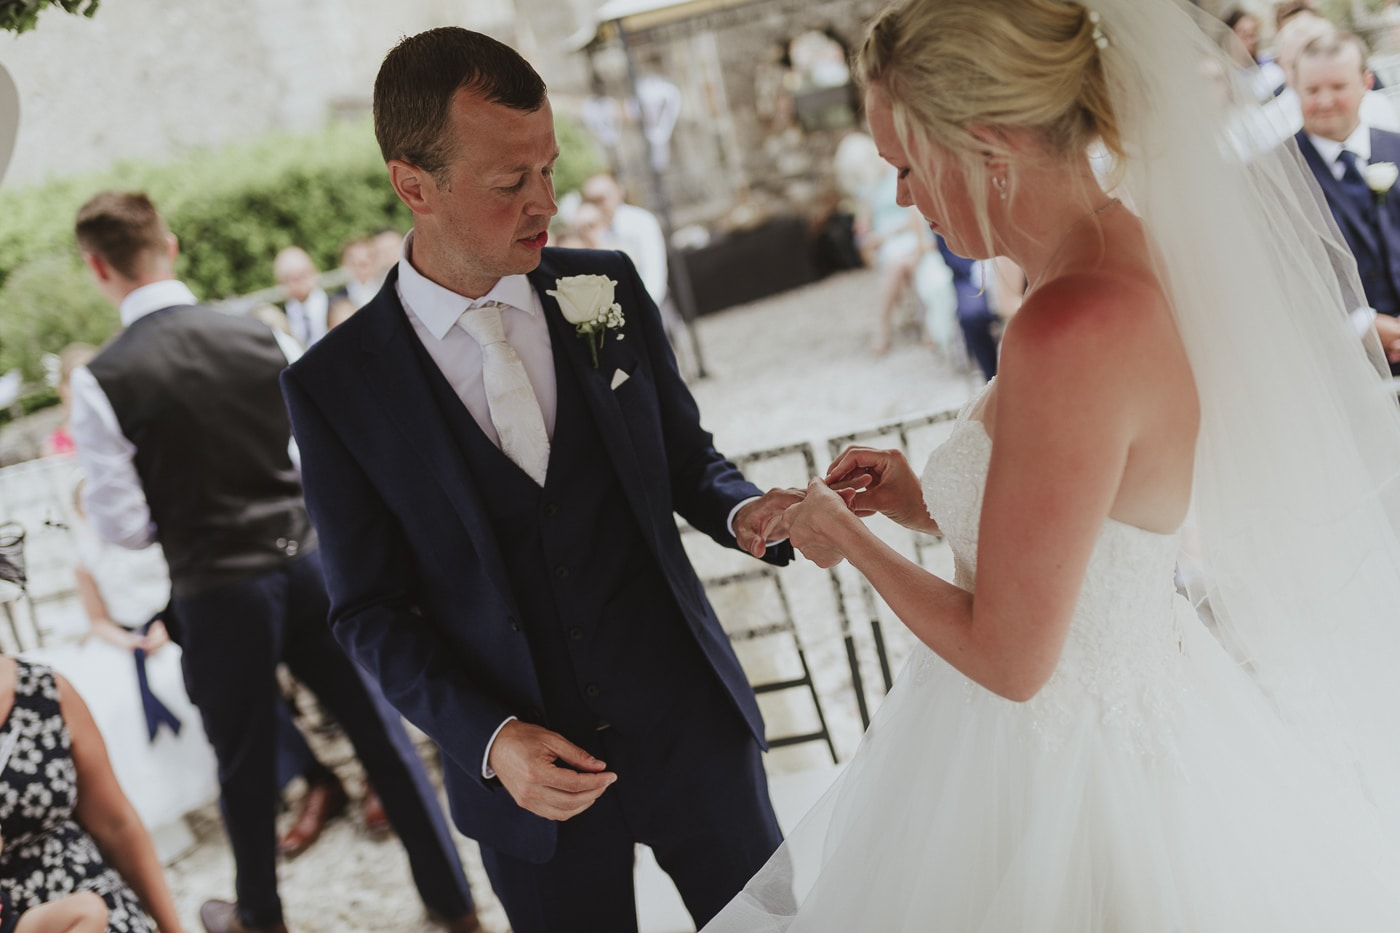 Bride in white dress putting ring on grooms finger during wedding vows